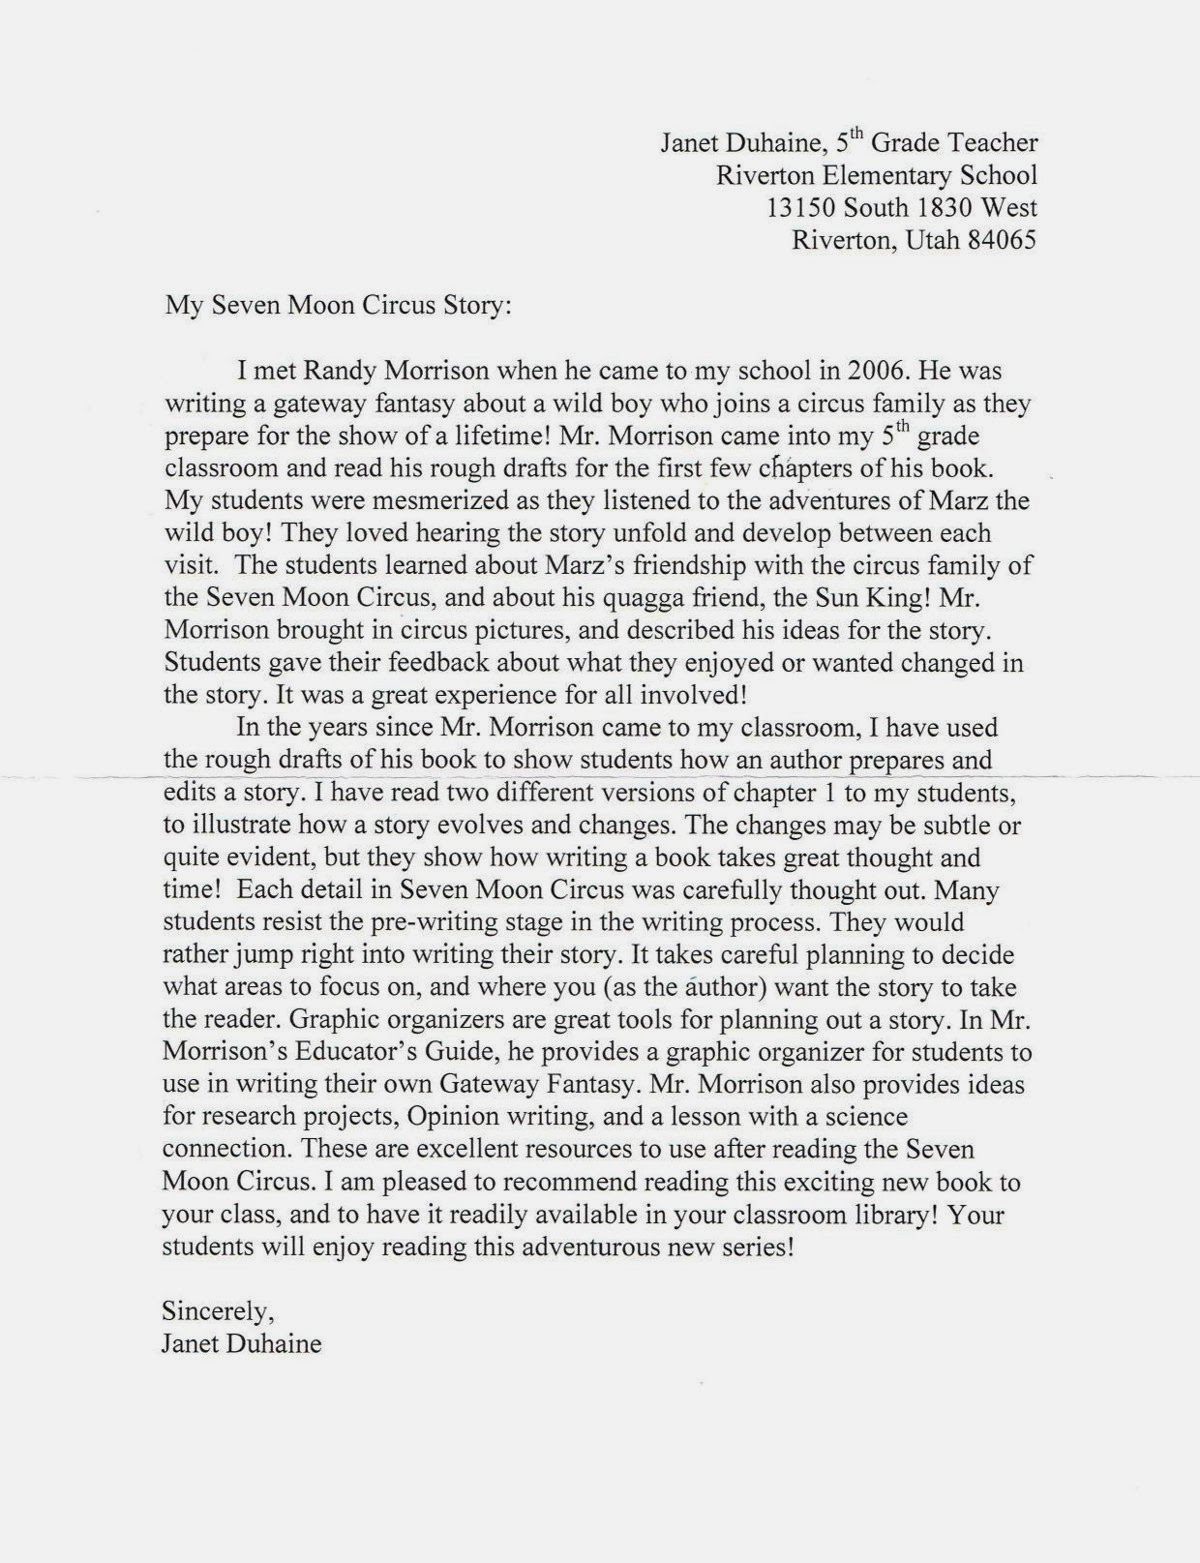 Online cover letter to unknown recipient